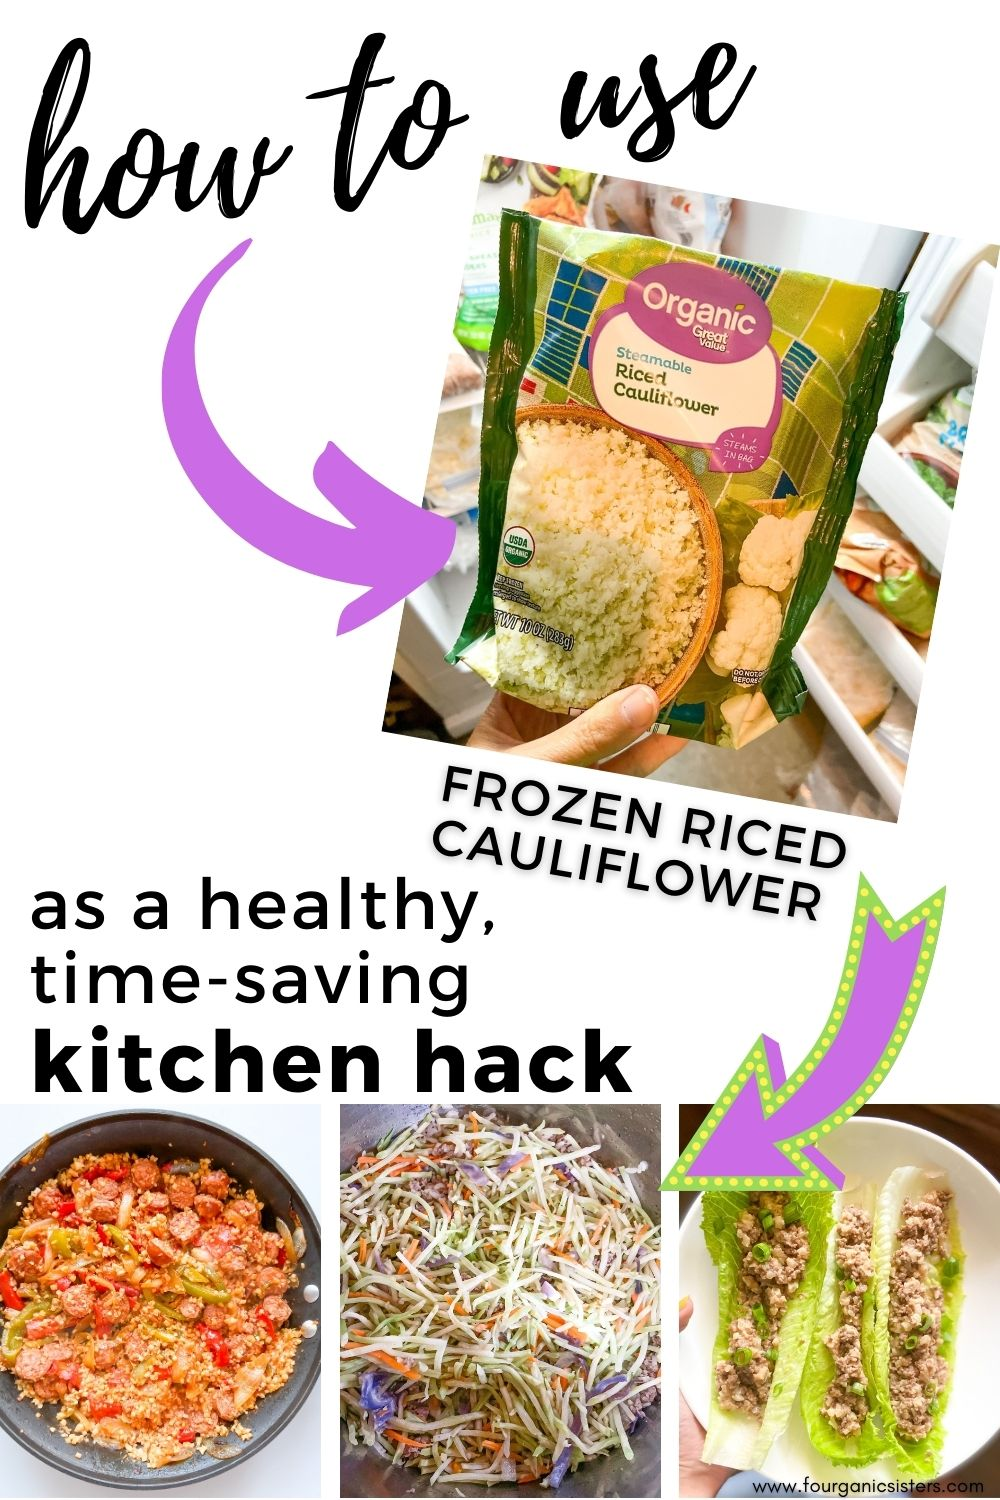 How to Use Frozen Riced Cauliflower to Save Time | Fourganic Sisters